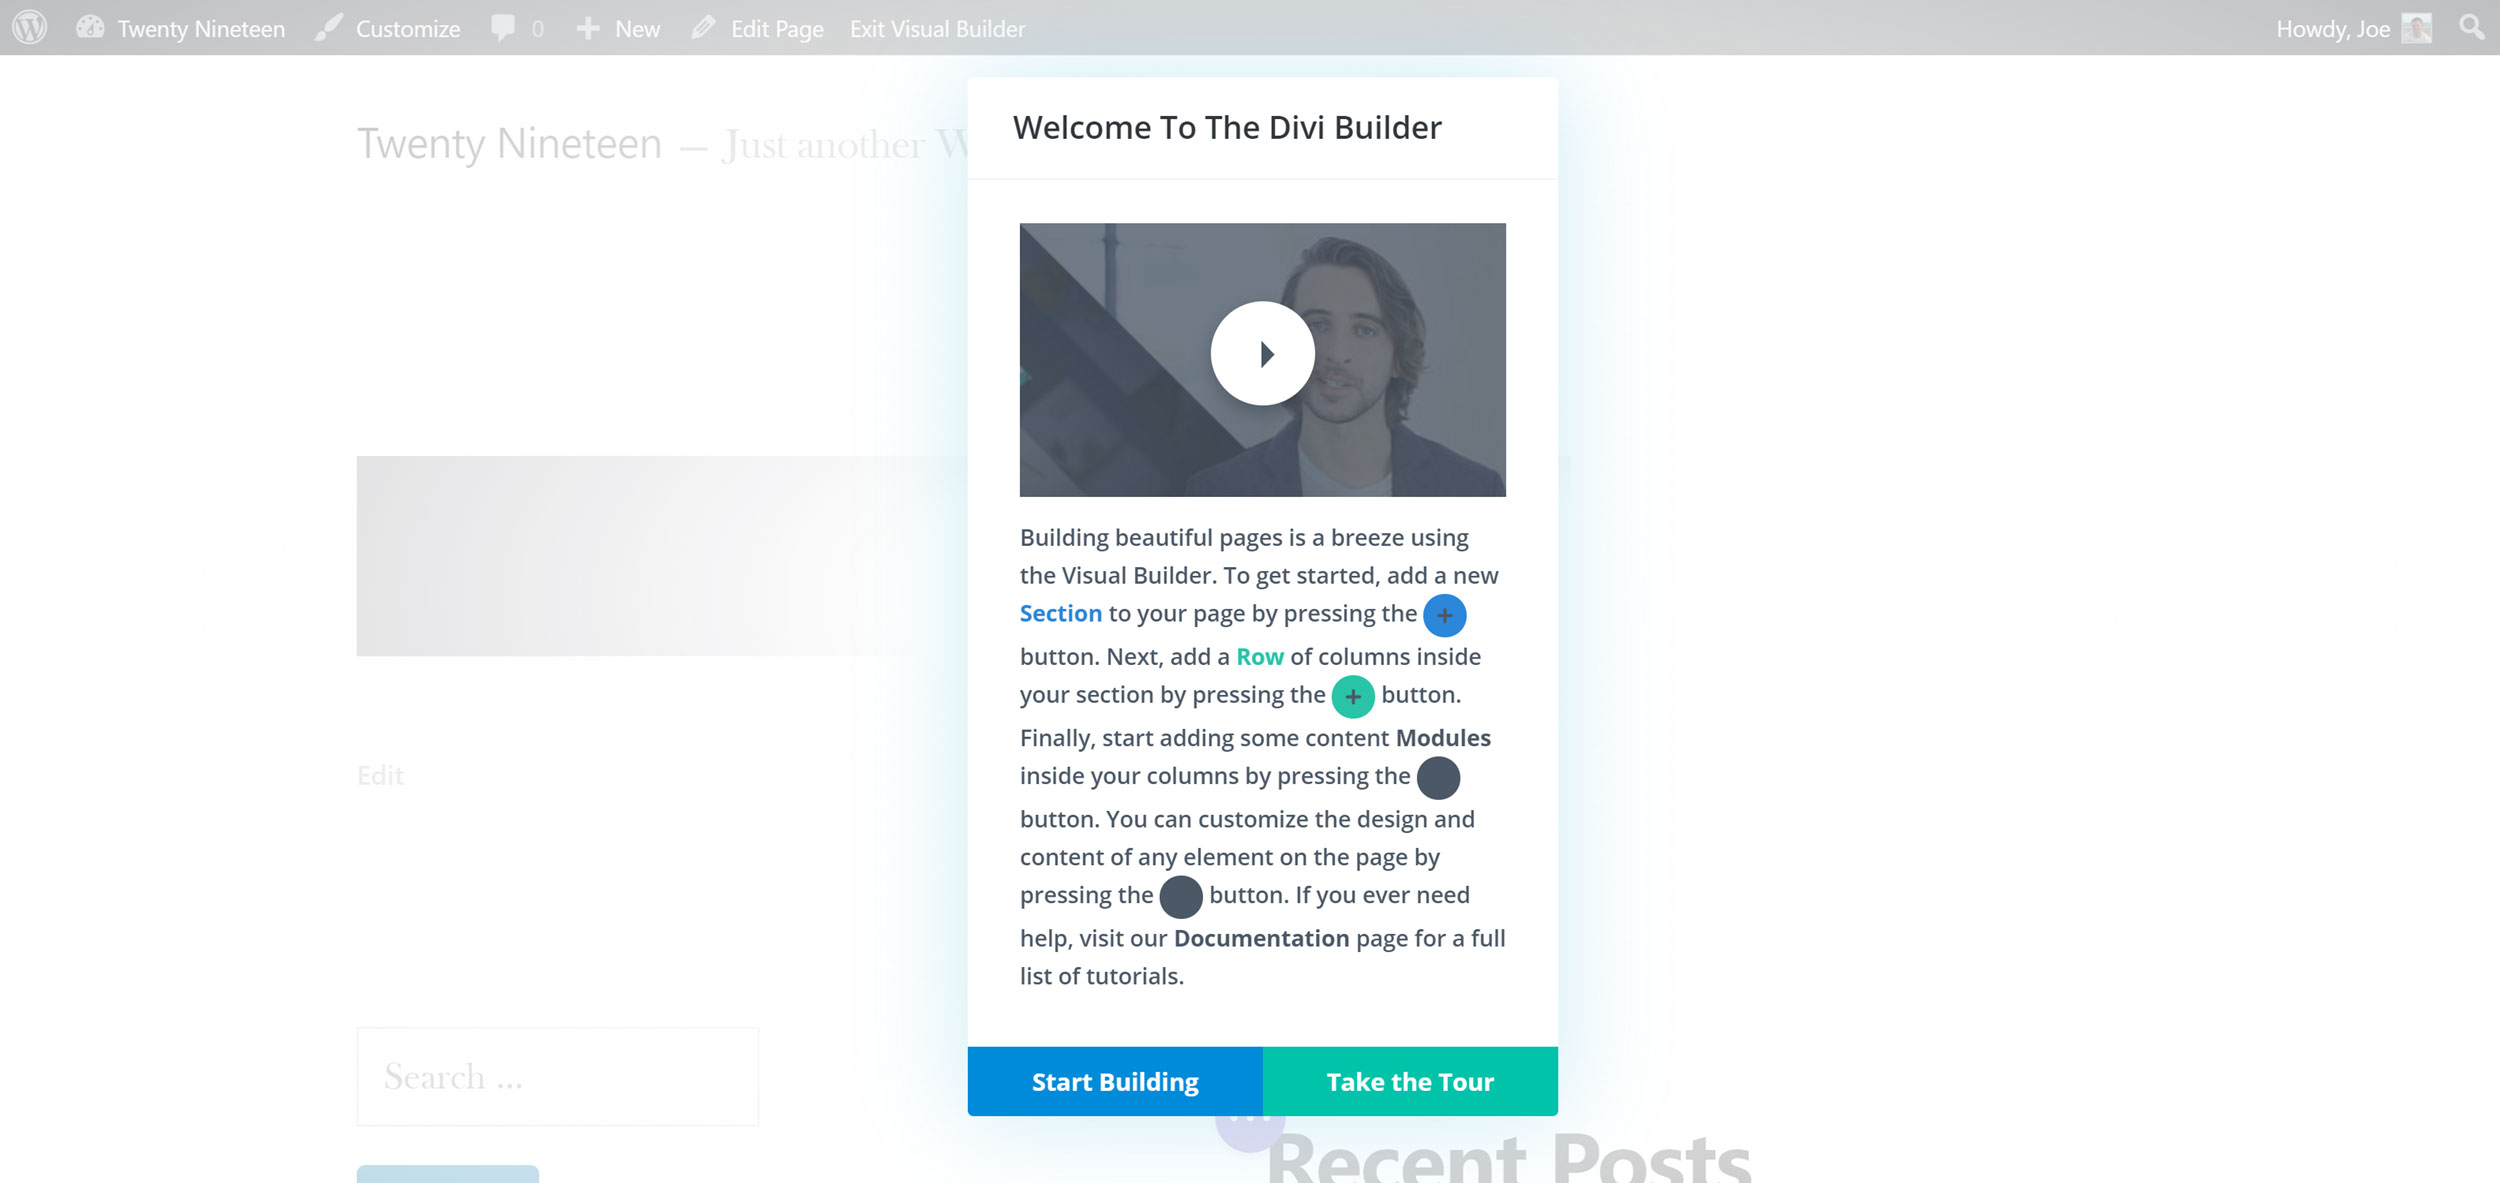 Divi Builder Welcome Tour